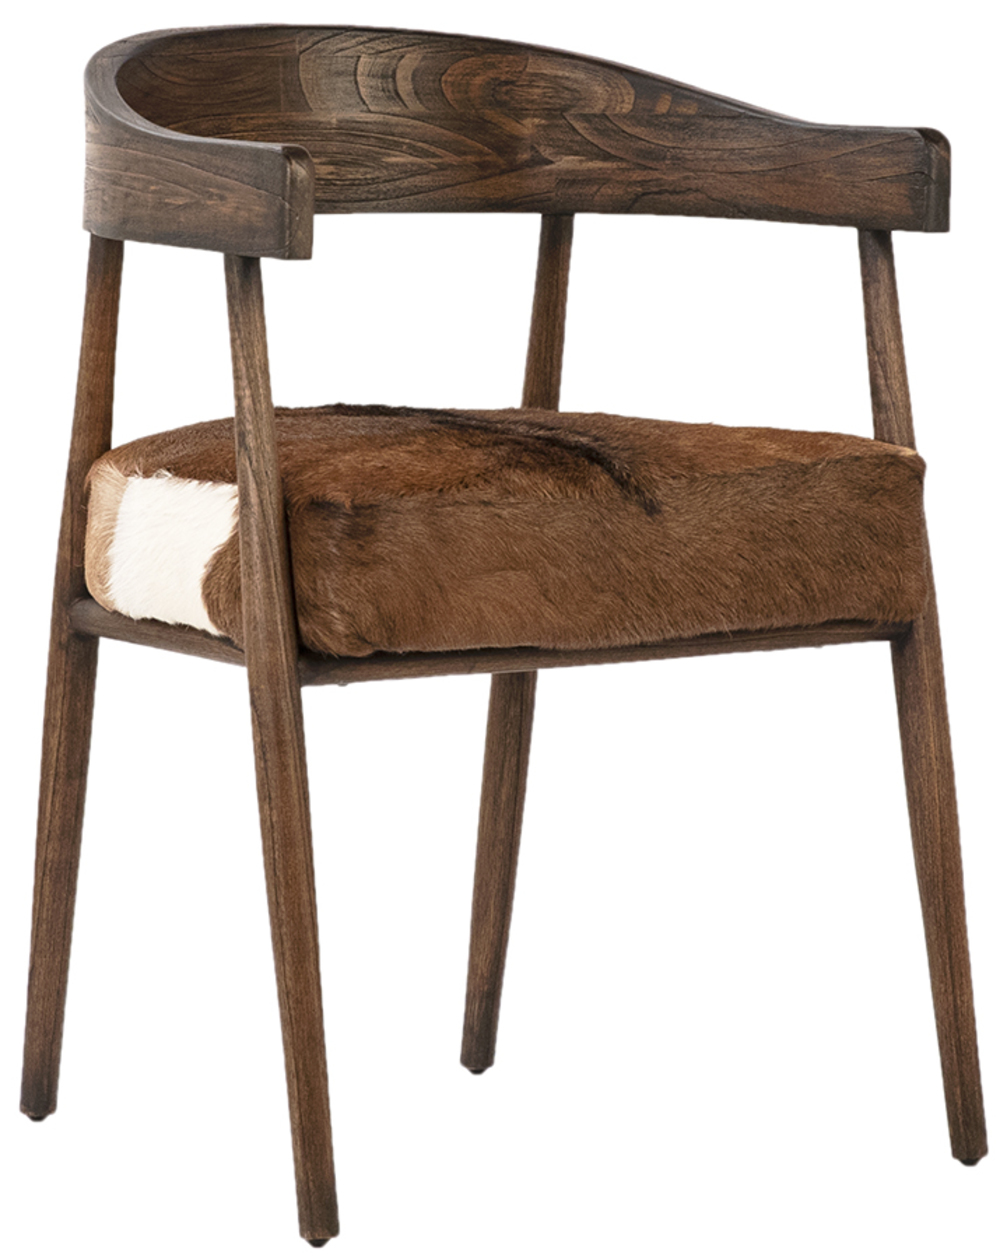 Dovetail Furniture - Samos Occasional Chair